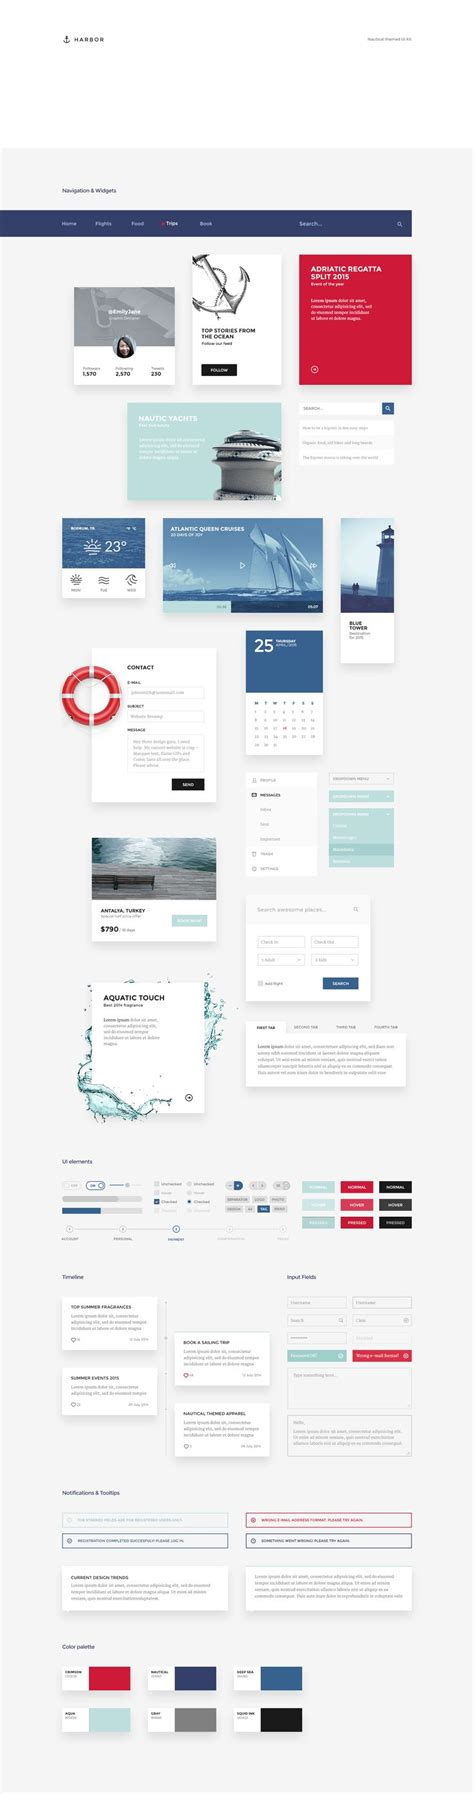 sap ui layout form responsive 25 best ideas about form design on pinterest report